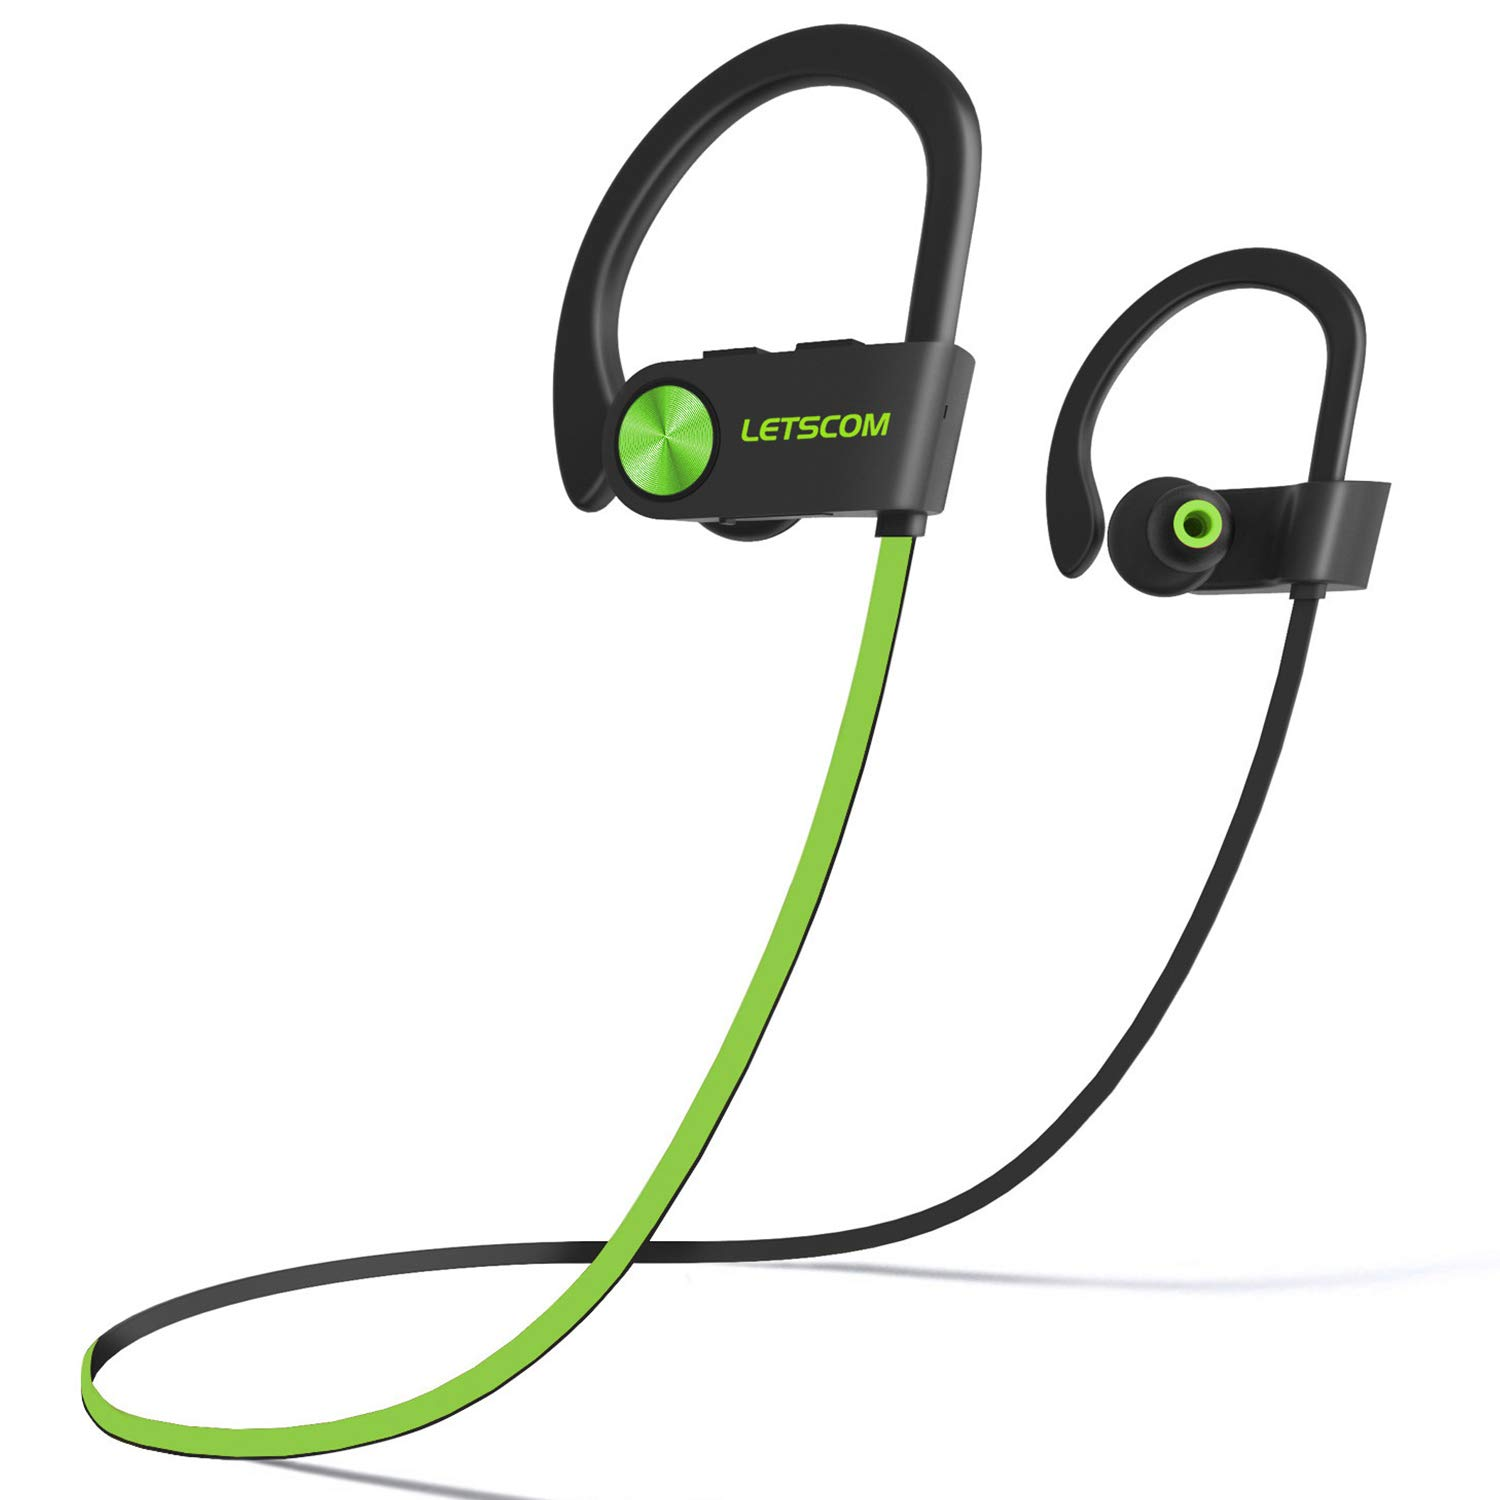 Amazon Com Letscom Bluetooth Headphones Ipx7 Waterproof Wireless Sport Earphones Hifi Bass Stereo Sweatproof Earbuds W Mic Noise Cancelling Headset For Workout Running Gym 8 Hours Play Time Electronics